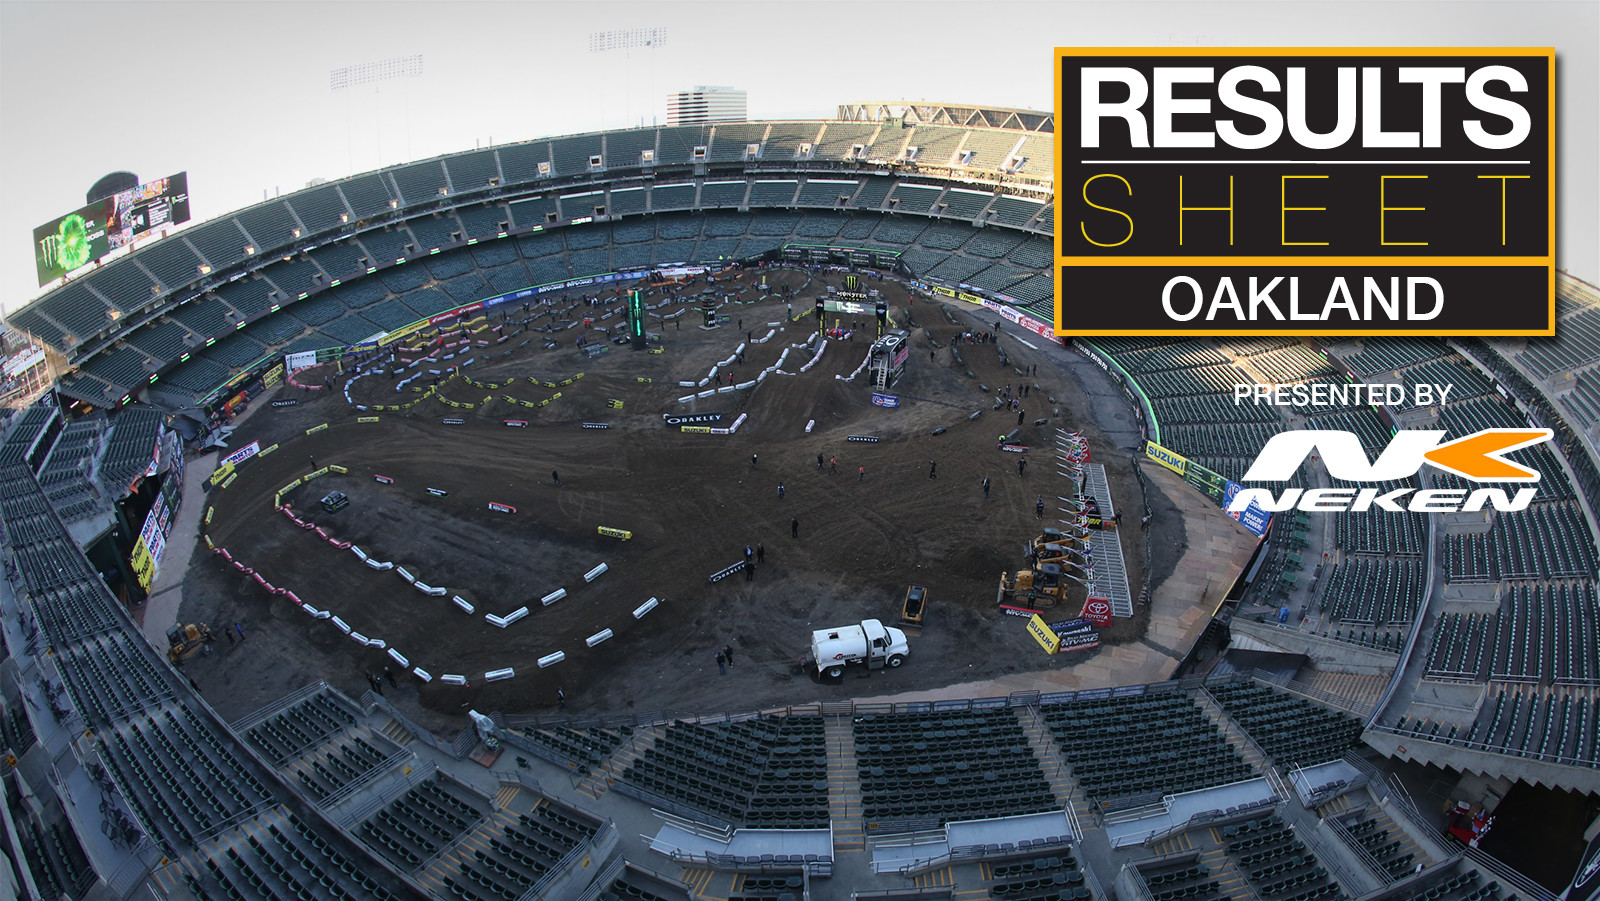 Results Sheet: 2018 Oakland Supercross